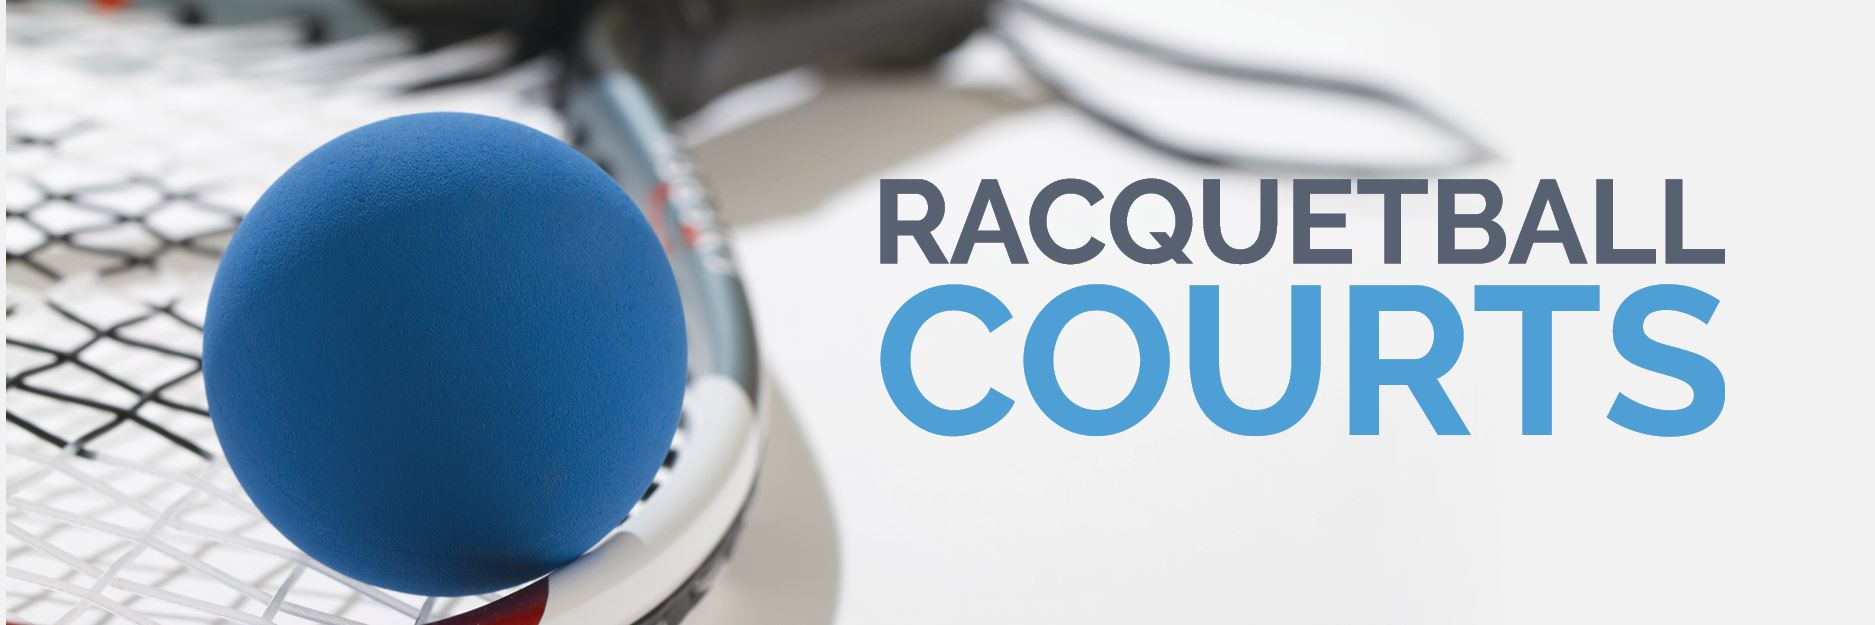 Book a Racquetball Court